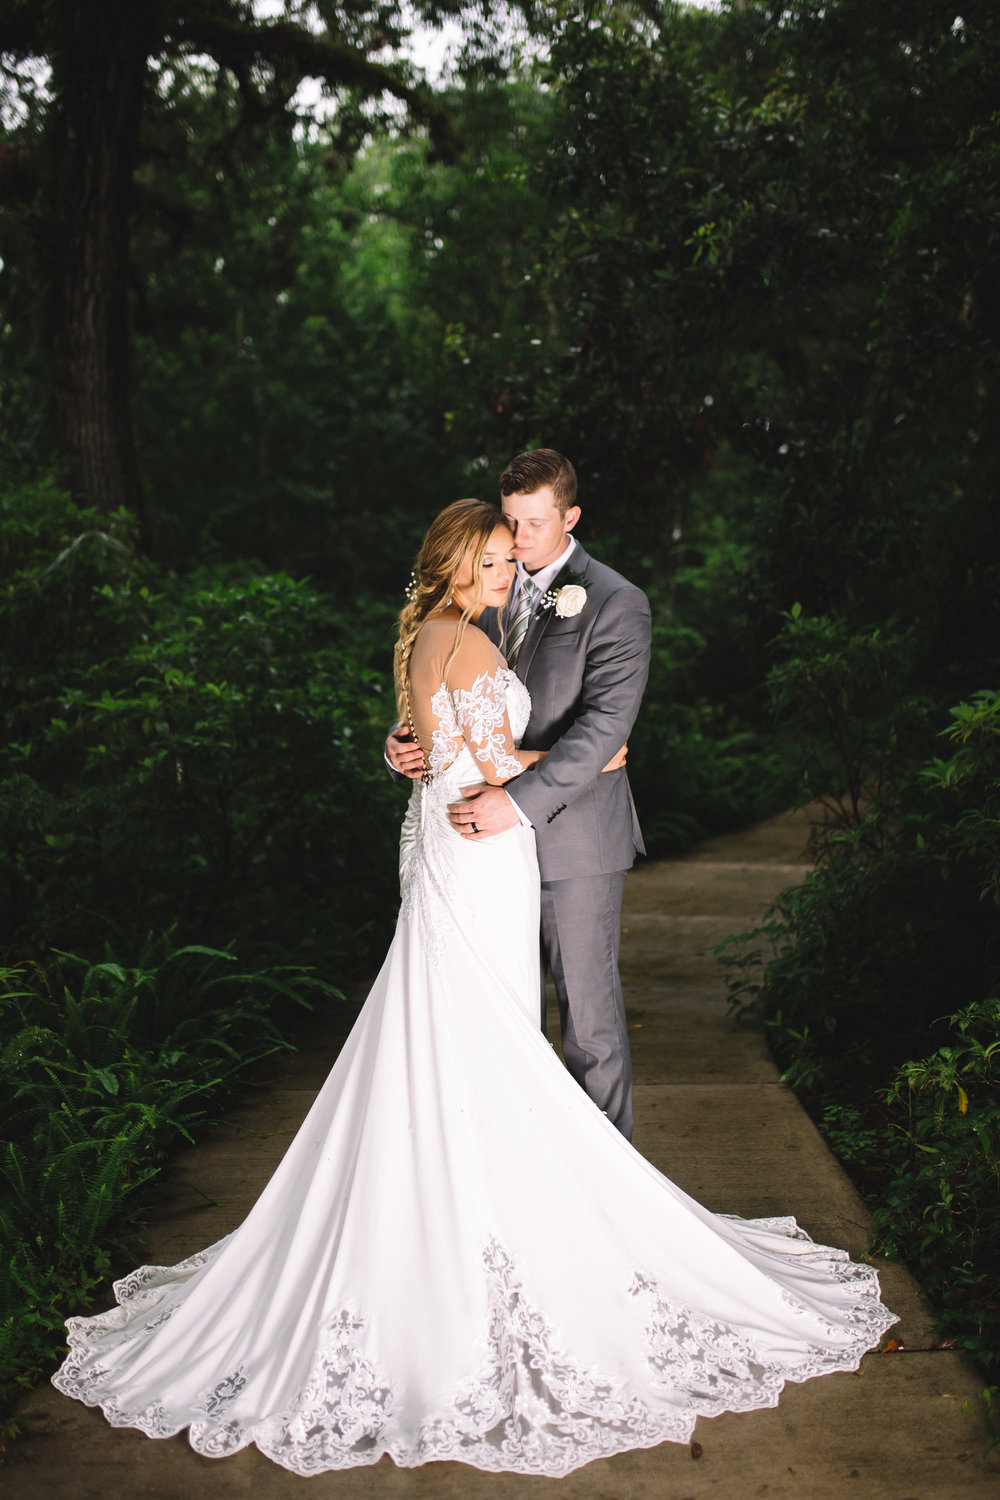 Jasmine Baetzel Wedding Photographer